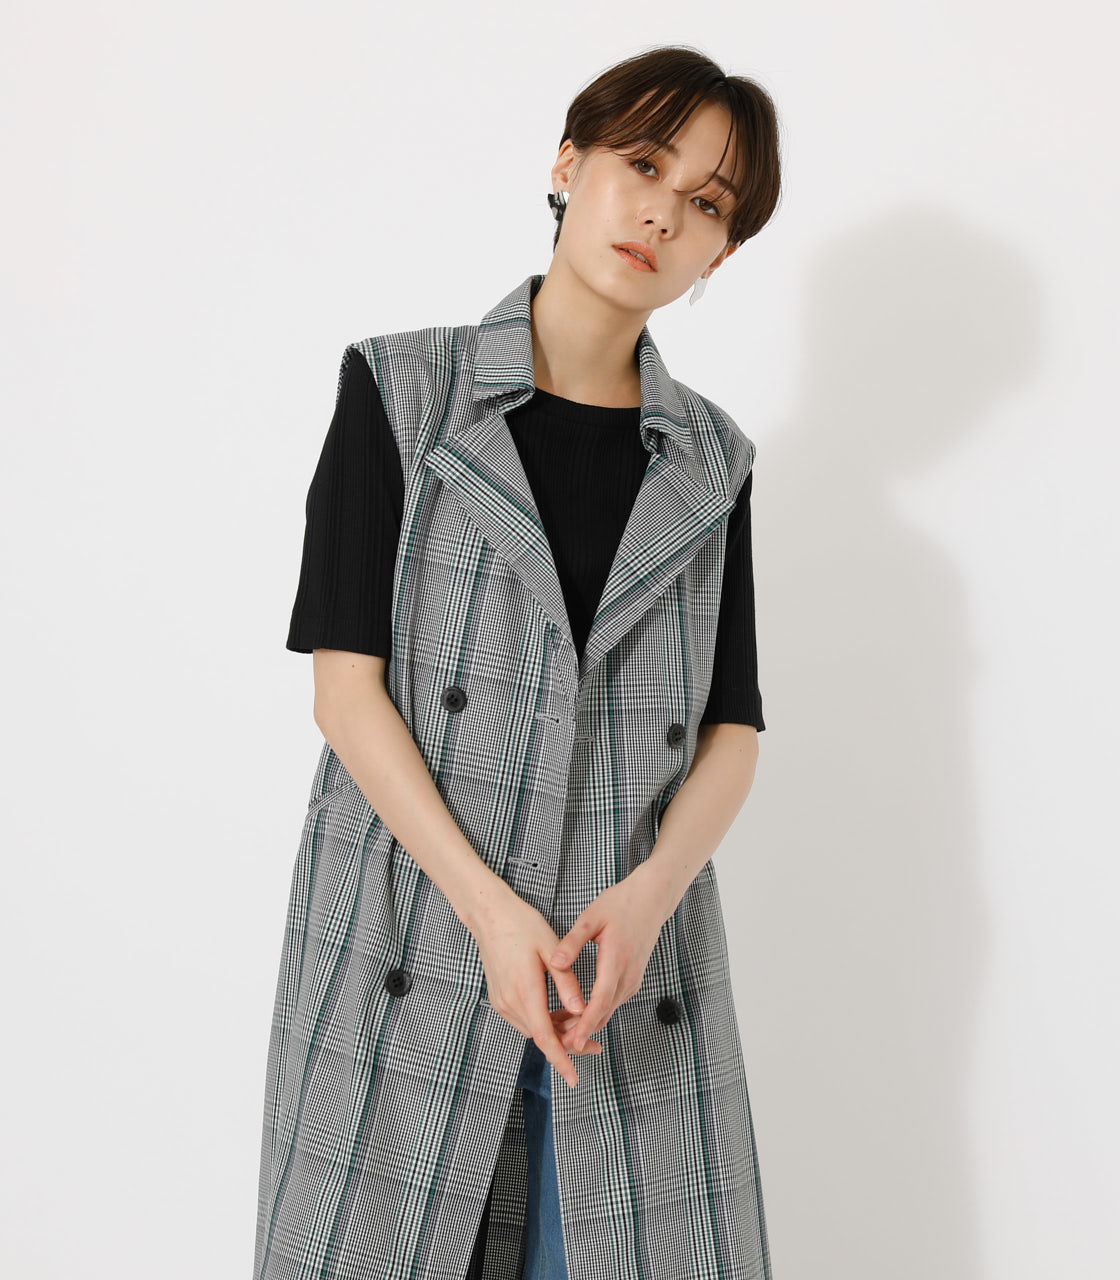 LOOSE TRENCH VEST/ルーズトレンチベスト 詳細画像 柄GRY 3